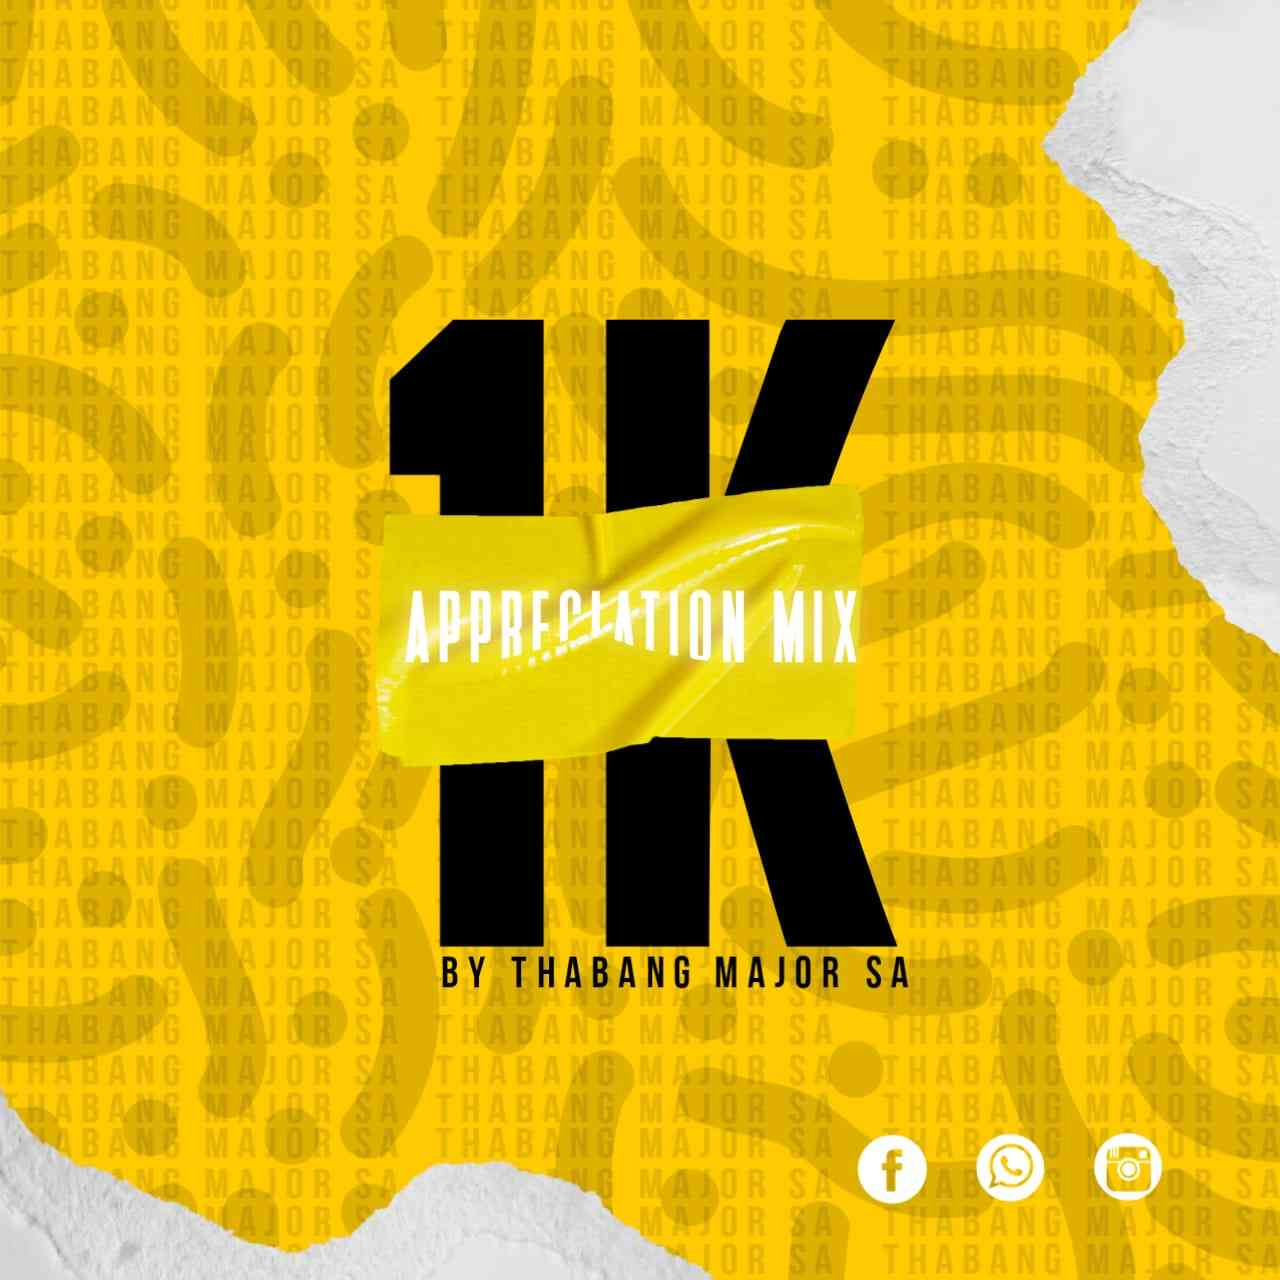 Thabang Major 1K Appreciation Mix